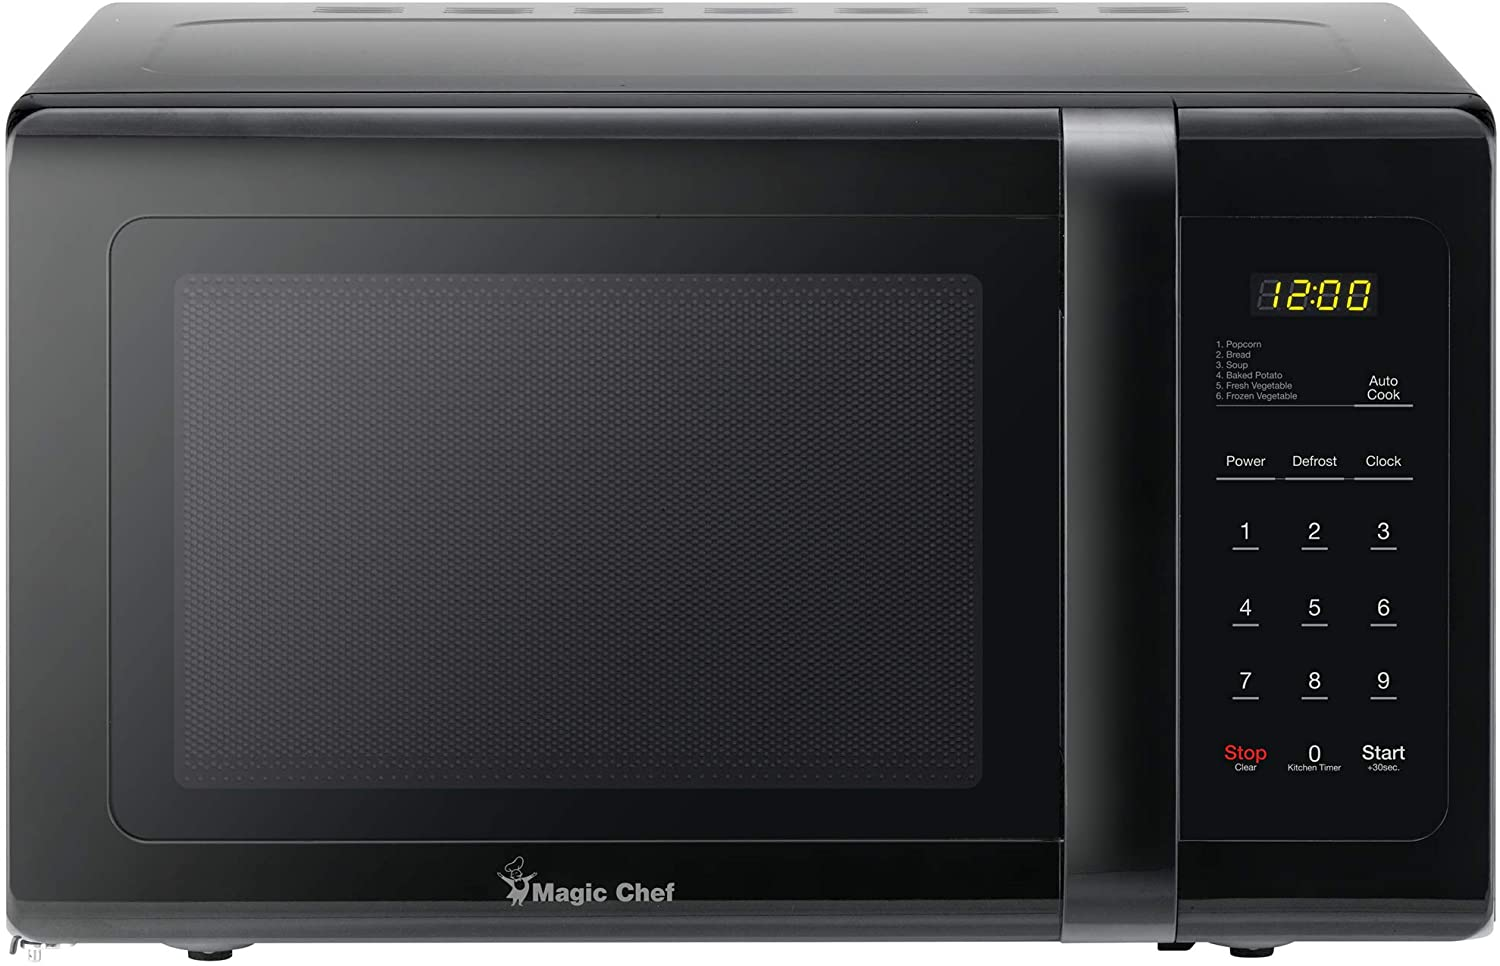 Magic Chef Microwave reviews